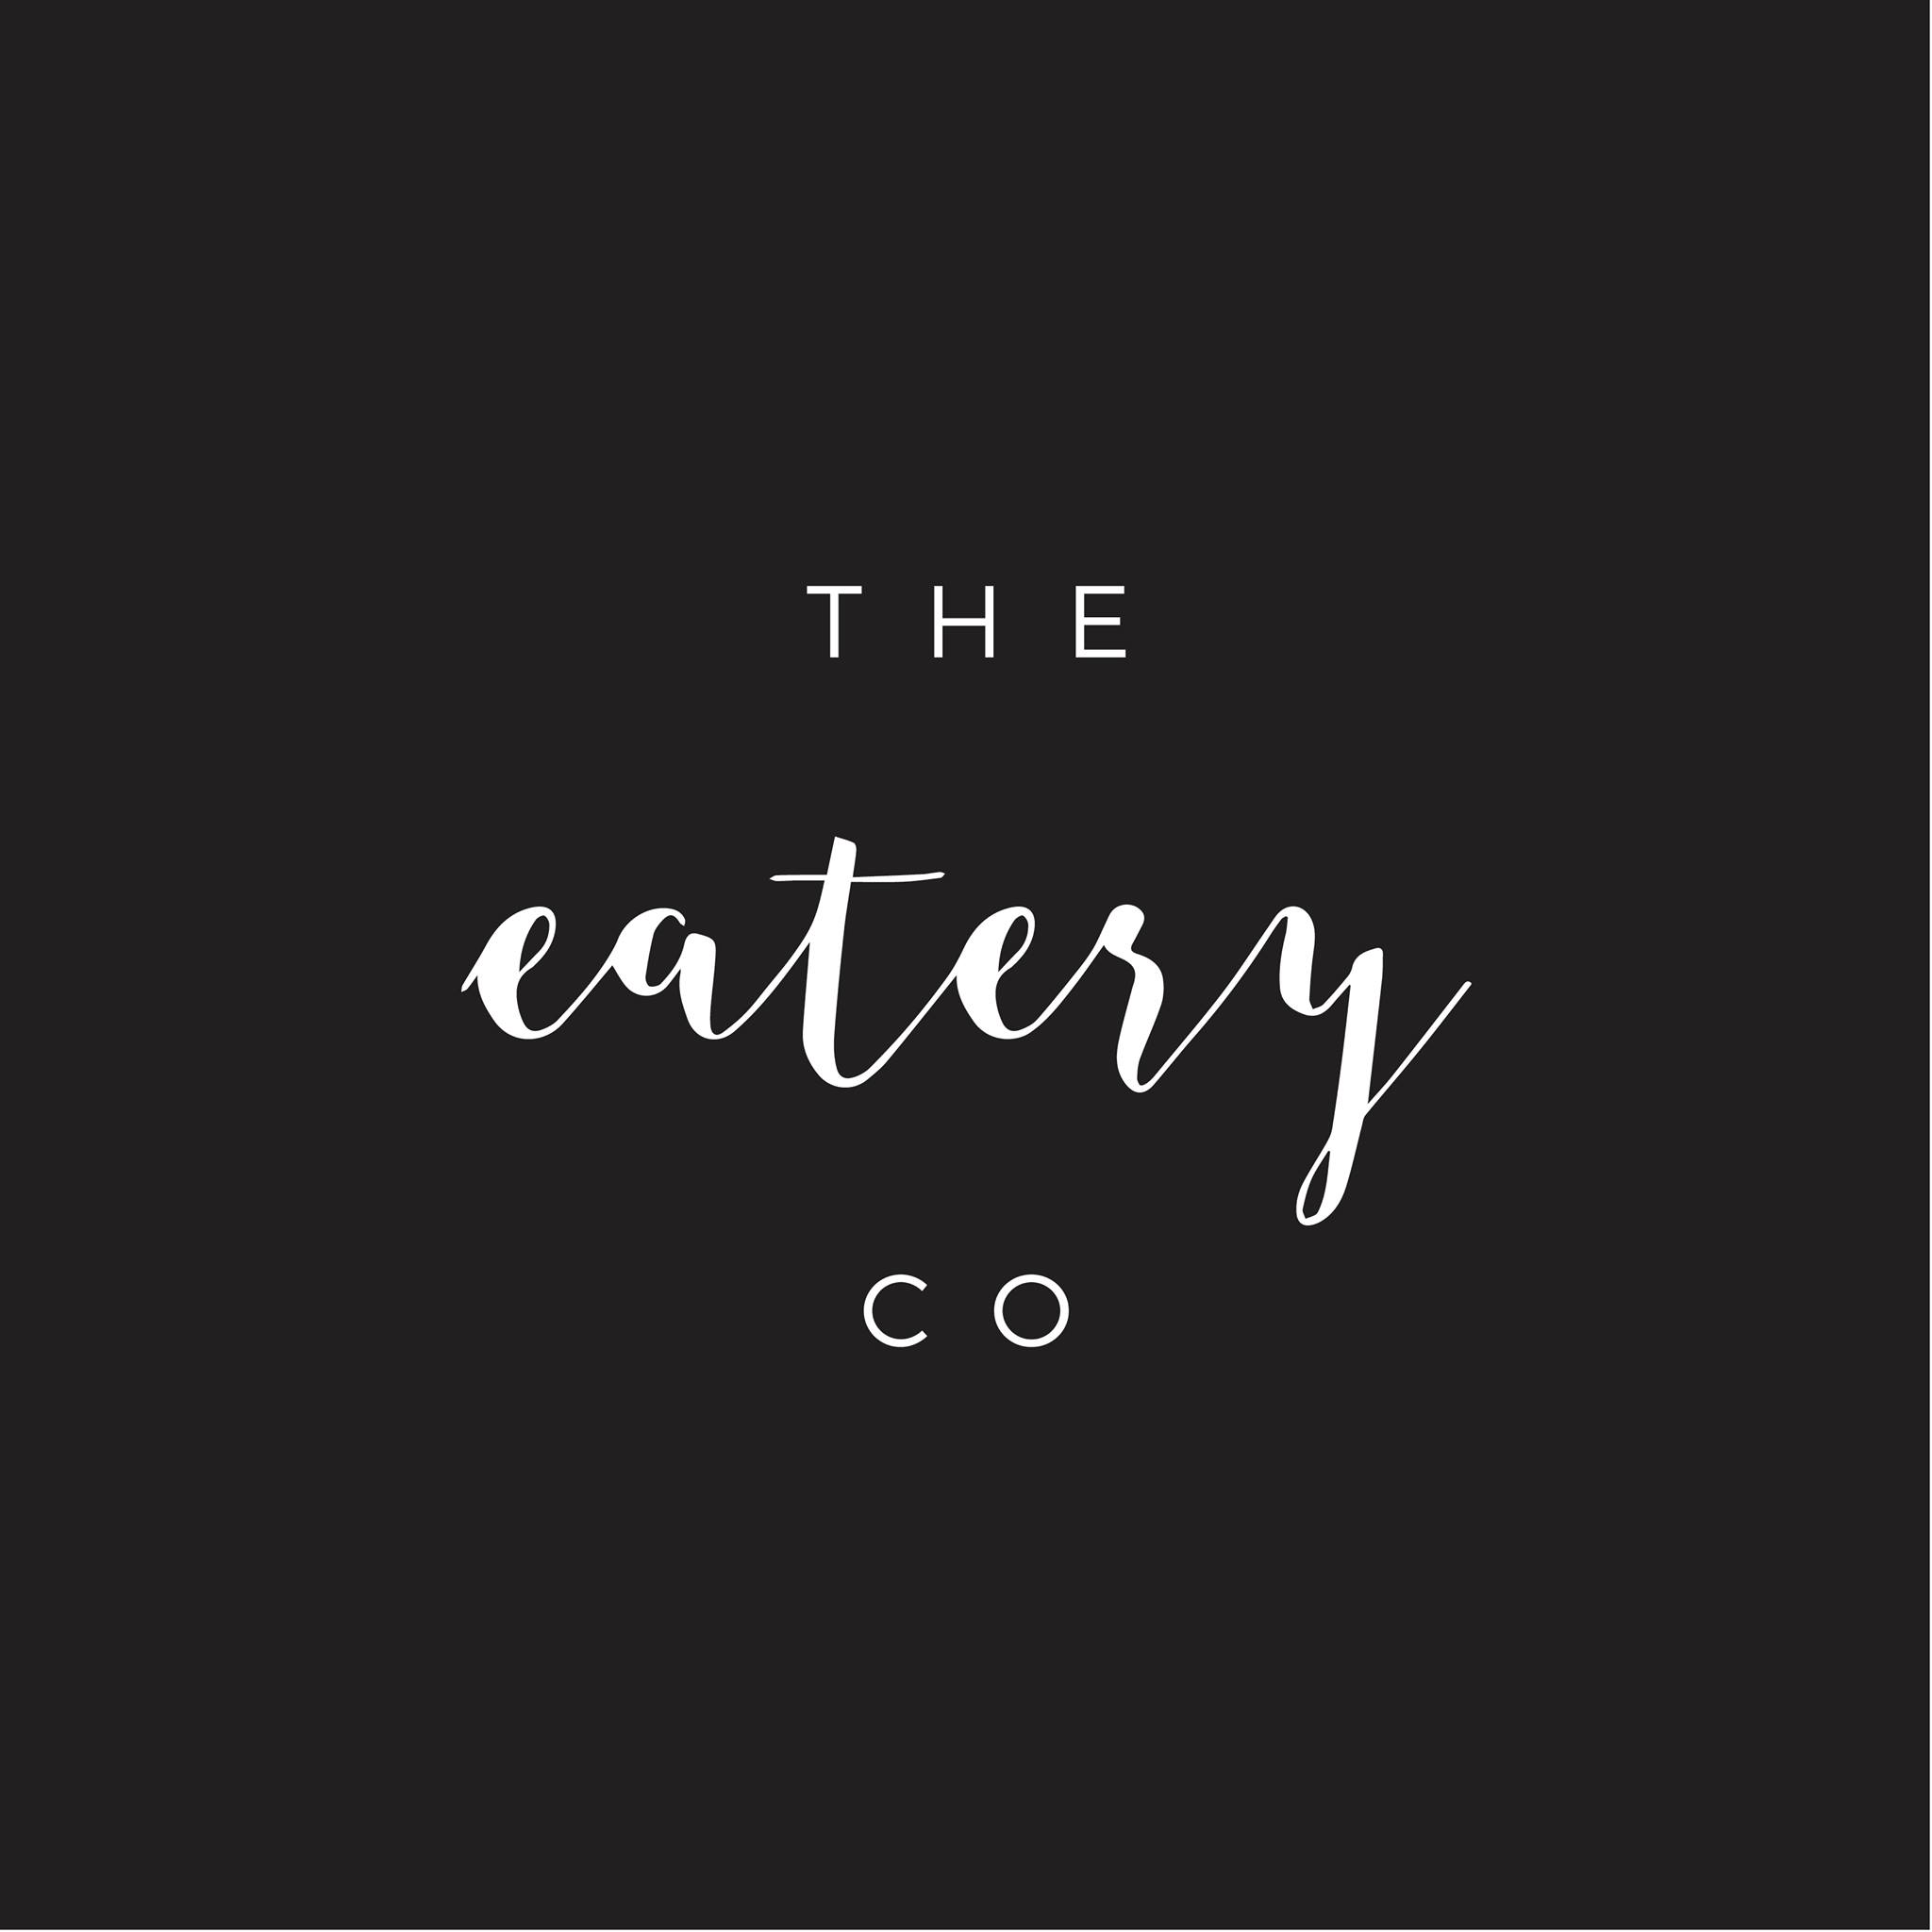 The Eatery Co